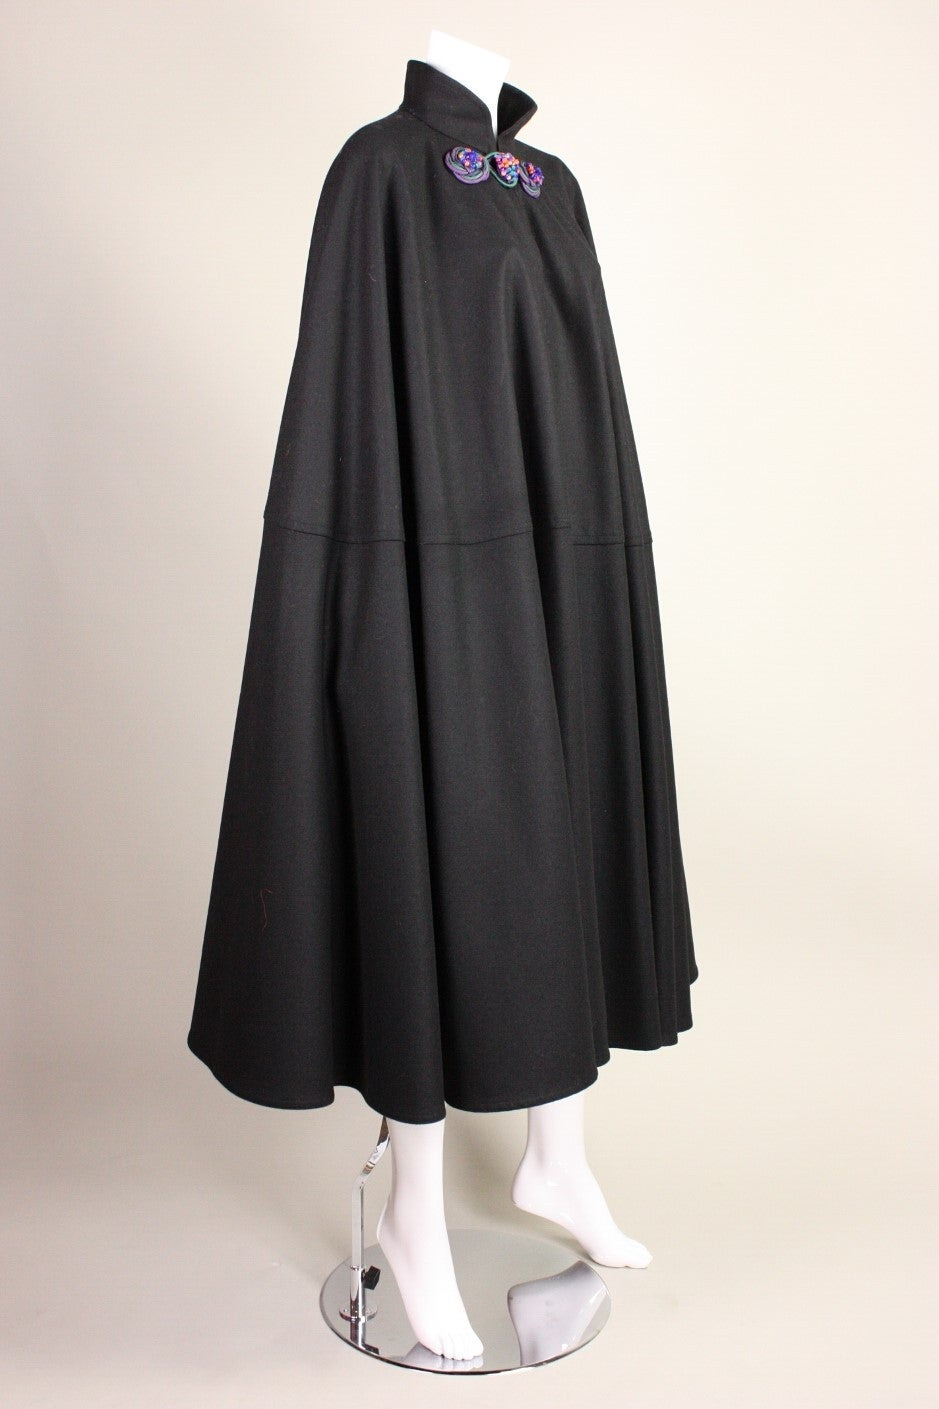 Vintage cape from Yves Saint Laurent dates to the late 1970's and is made of black wool with multicolor stone closure at center front neckline.  Stand collar.  Unlined.  Center front hook and eye closure behind frog fastener.